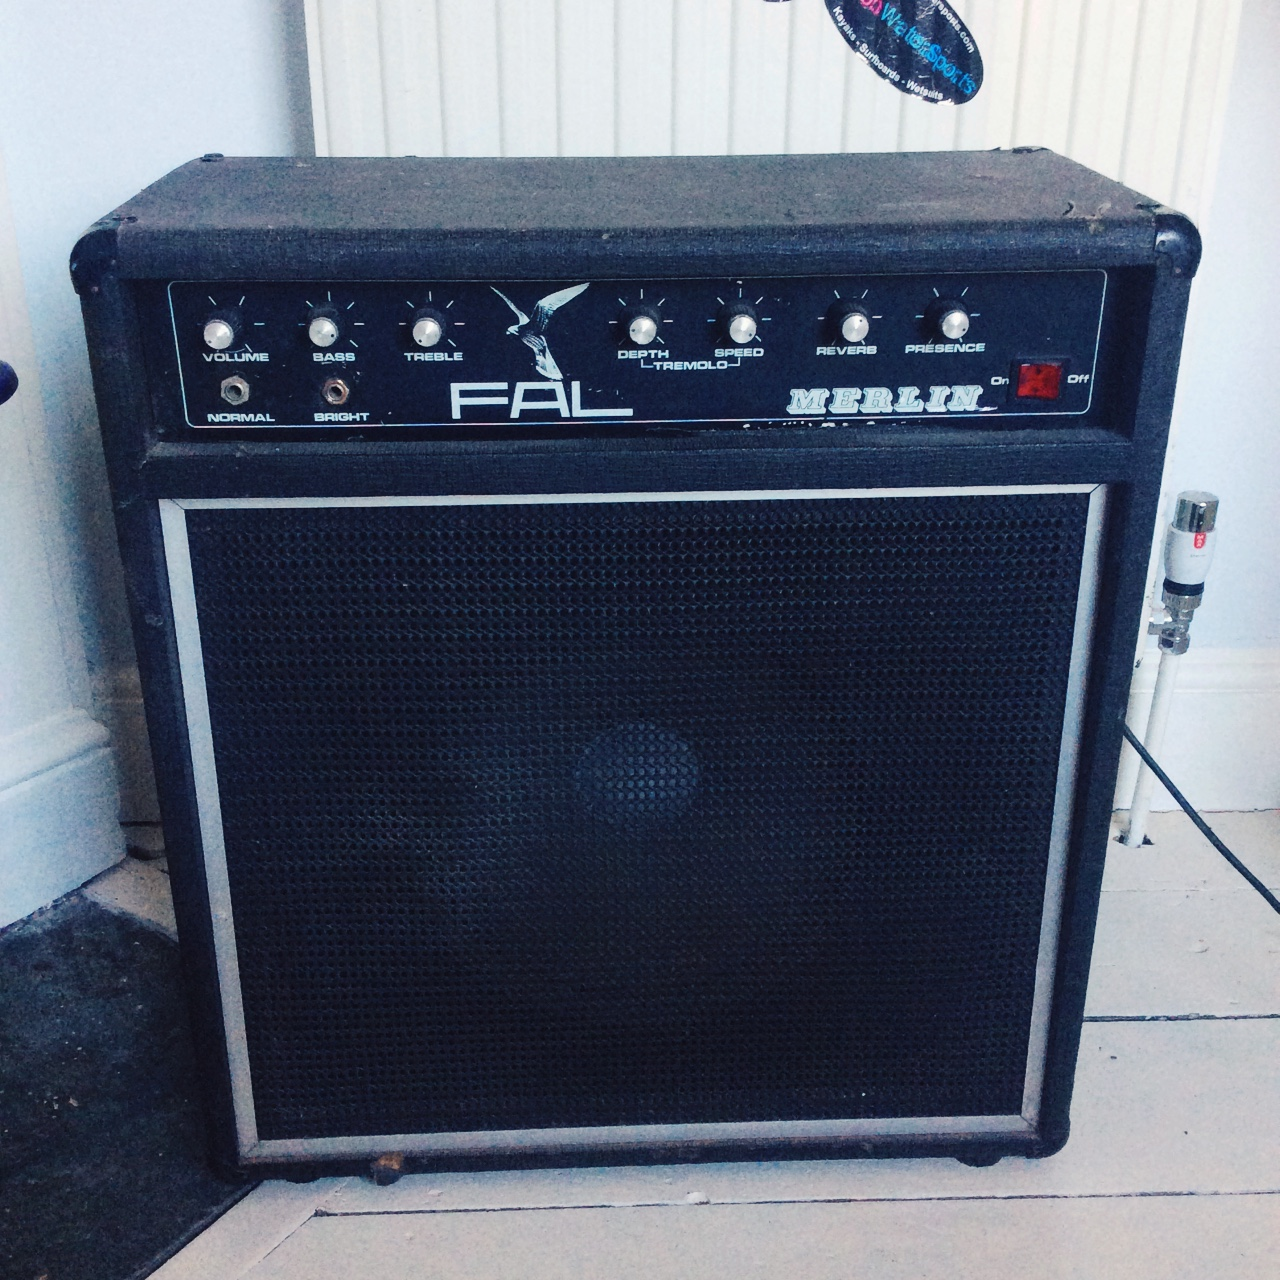 Fal Merlin - Reverb - Transistor - Amplifier - Late... - Depop on